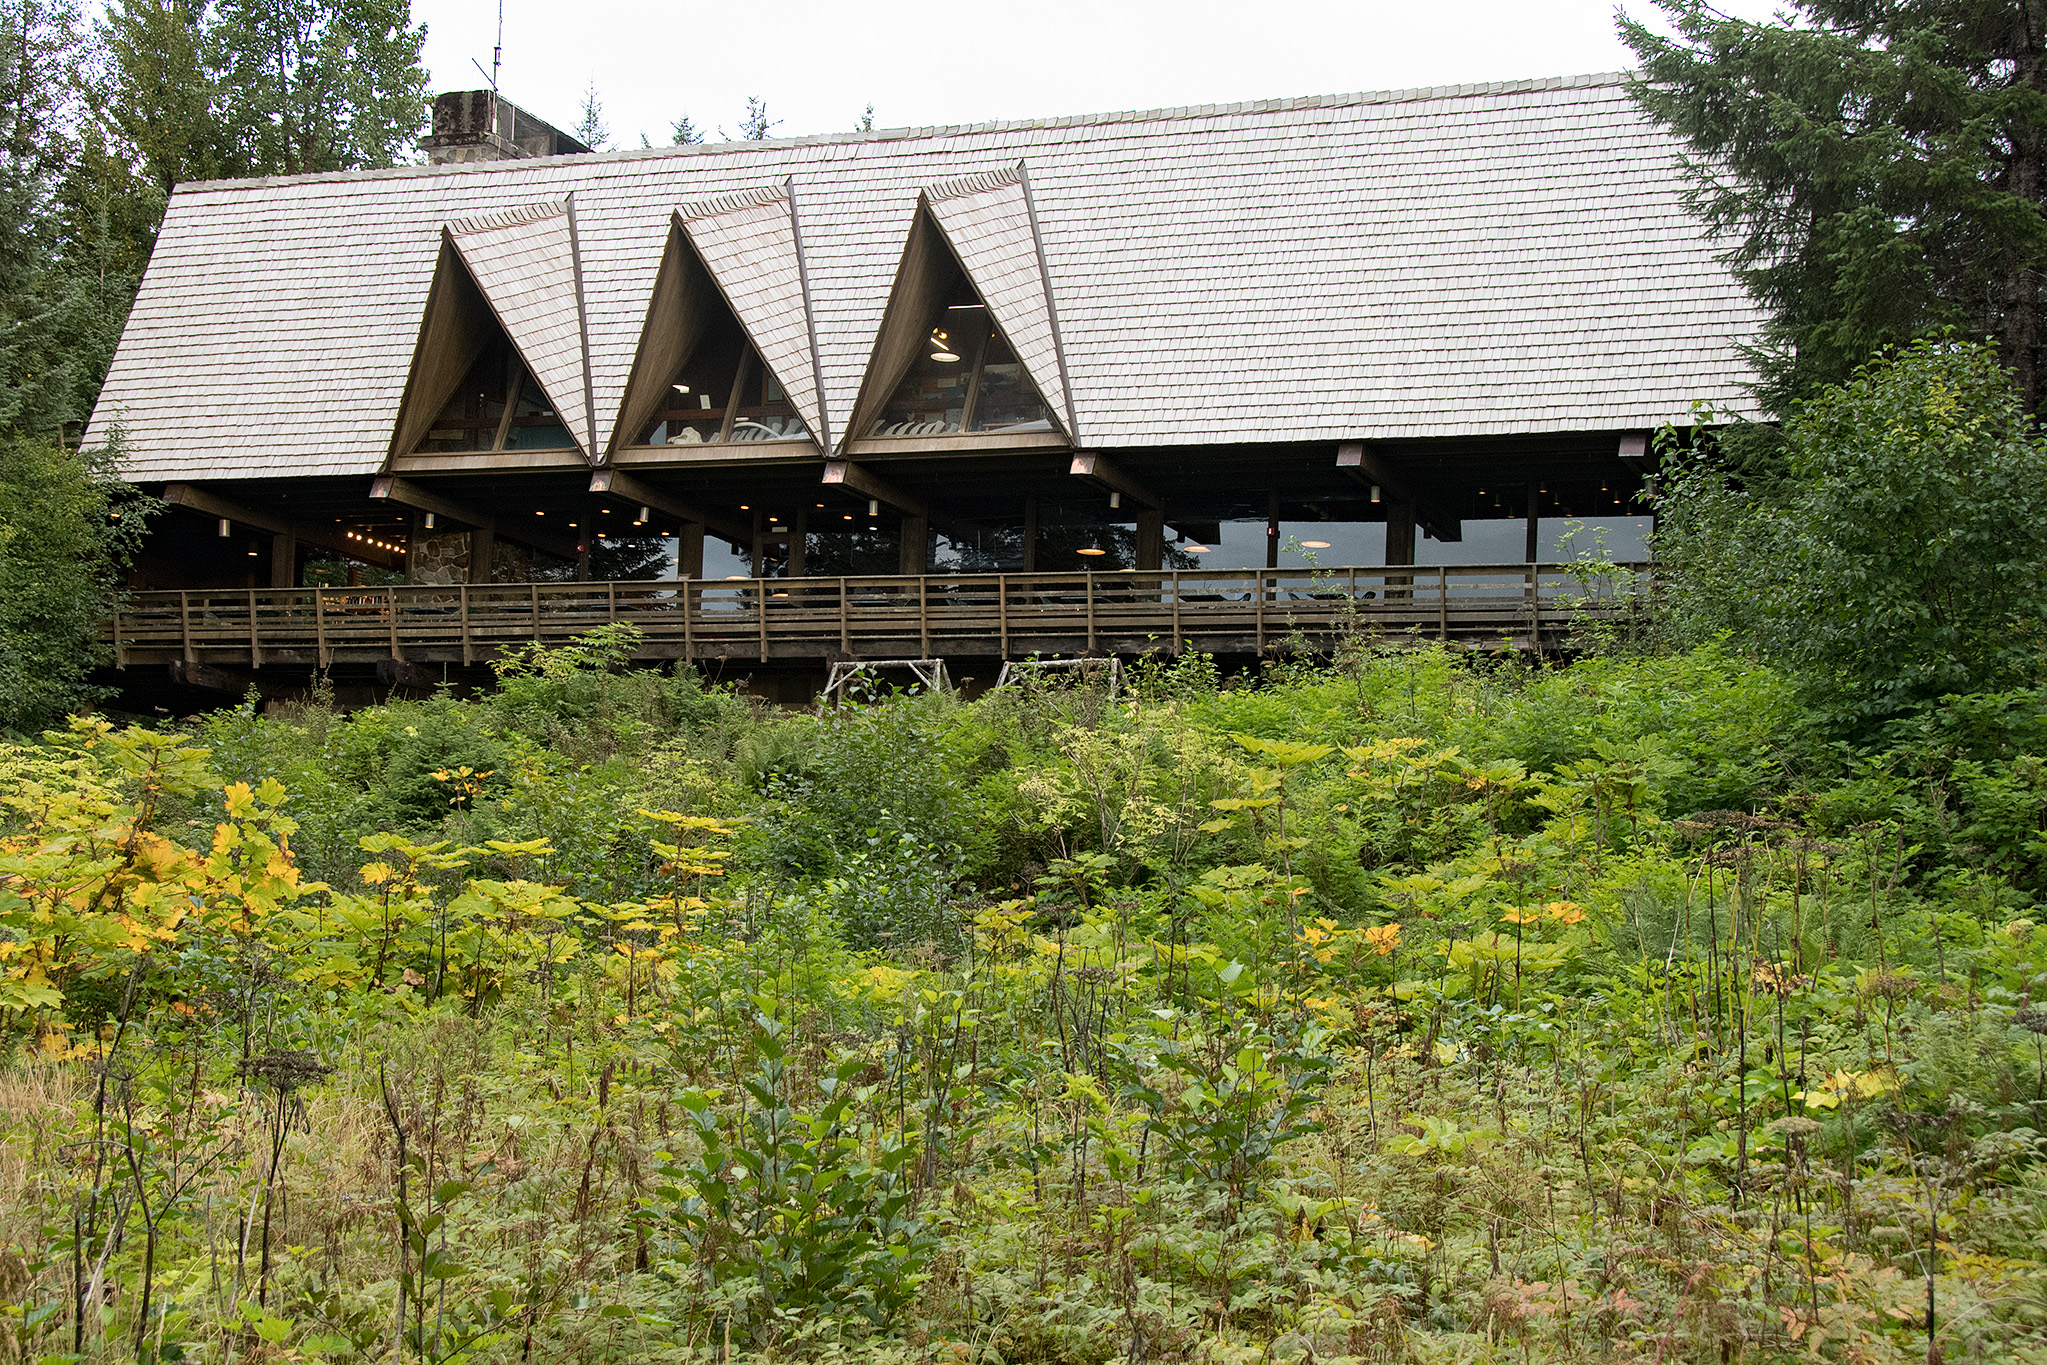 The Glacier Bay Lodge, where there is a small museum in the visitors center with displays ecological exhibits